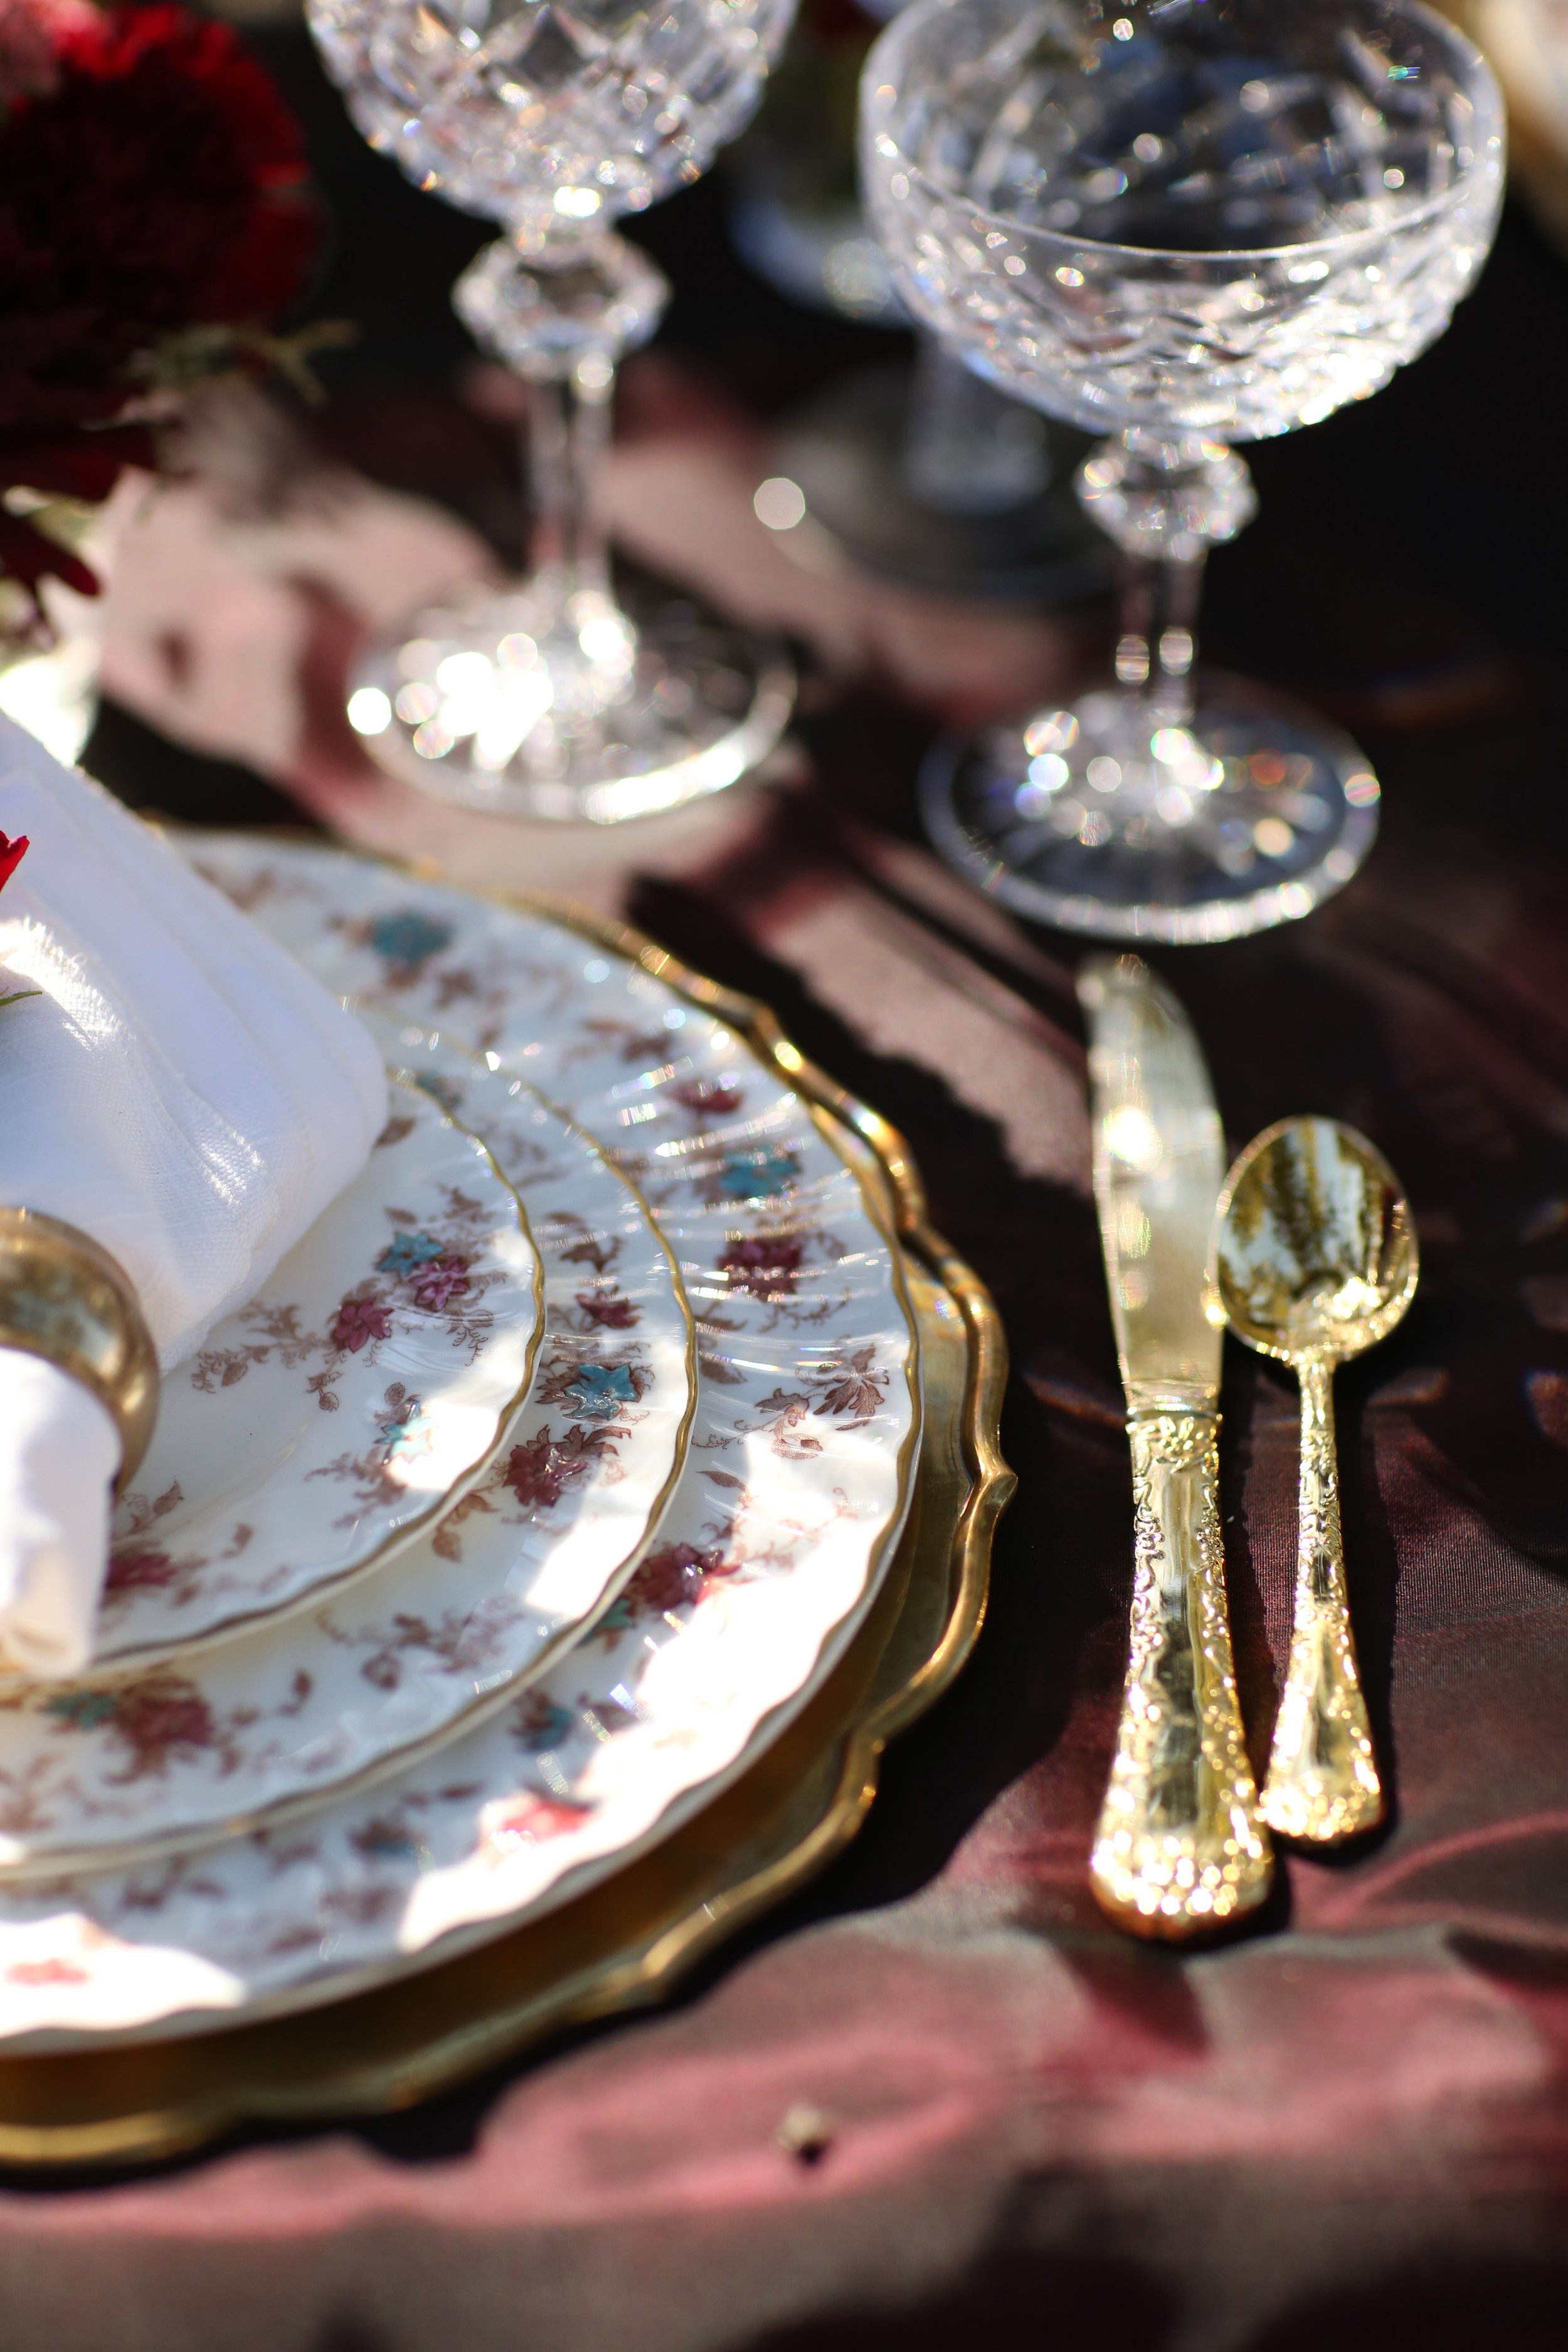 Gold silverware enhancing a wedding table setting of vintage china set on a brass charger plate.